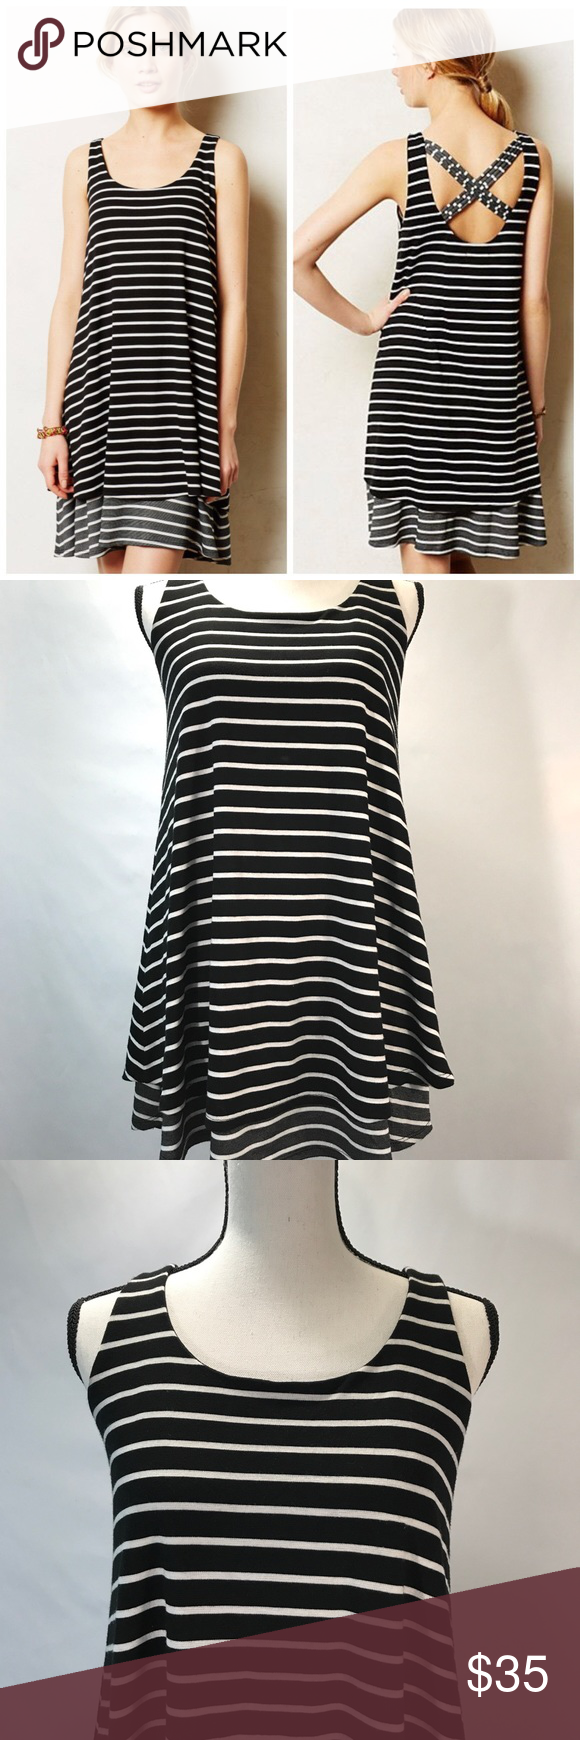 e96303be1713 Anthropology Puella dress striped xs petite Antropologie Puella Dress size  xsp black, white, and gray stripe stretchy, layered shift style dress cross  back ...